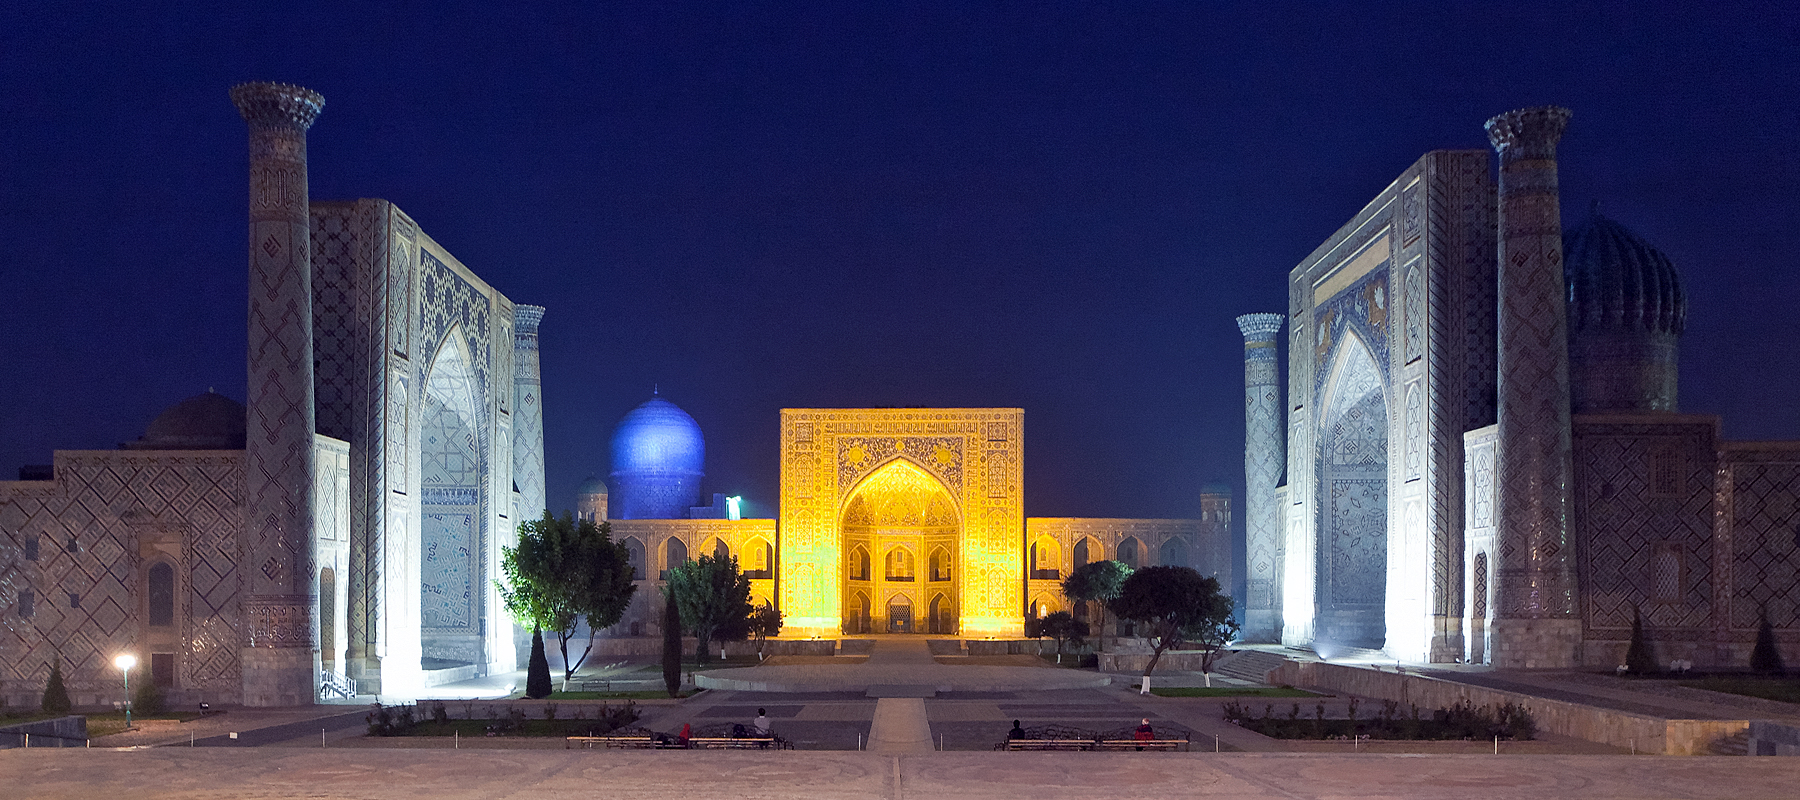 Registanplatz in Samarkand